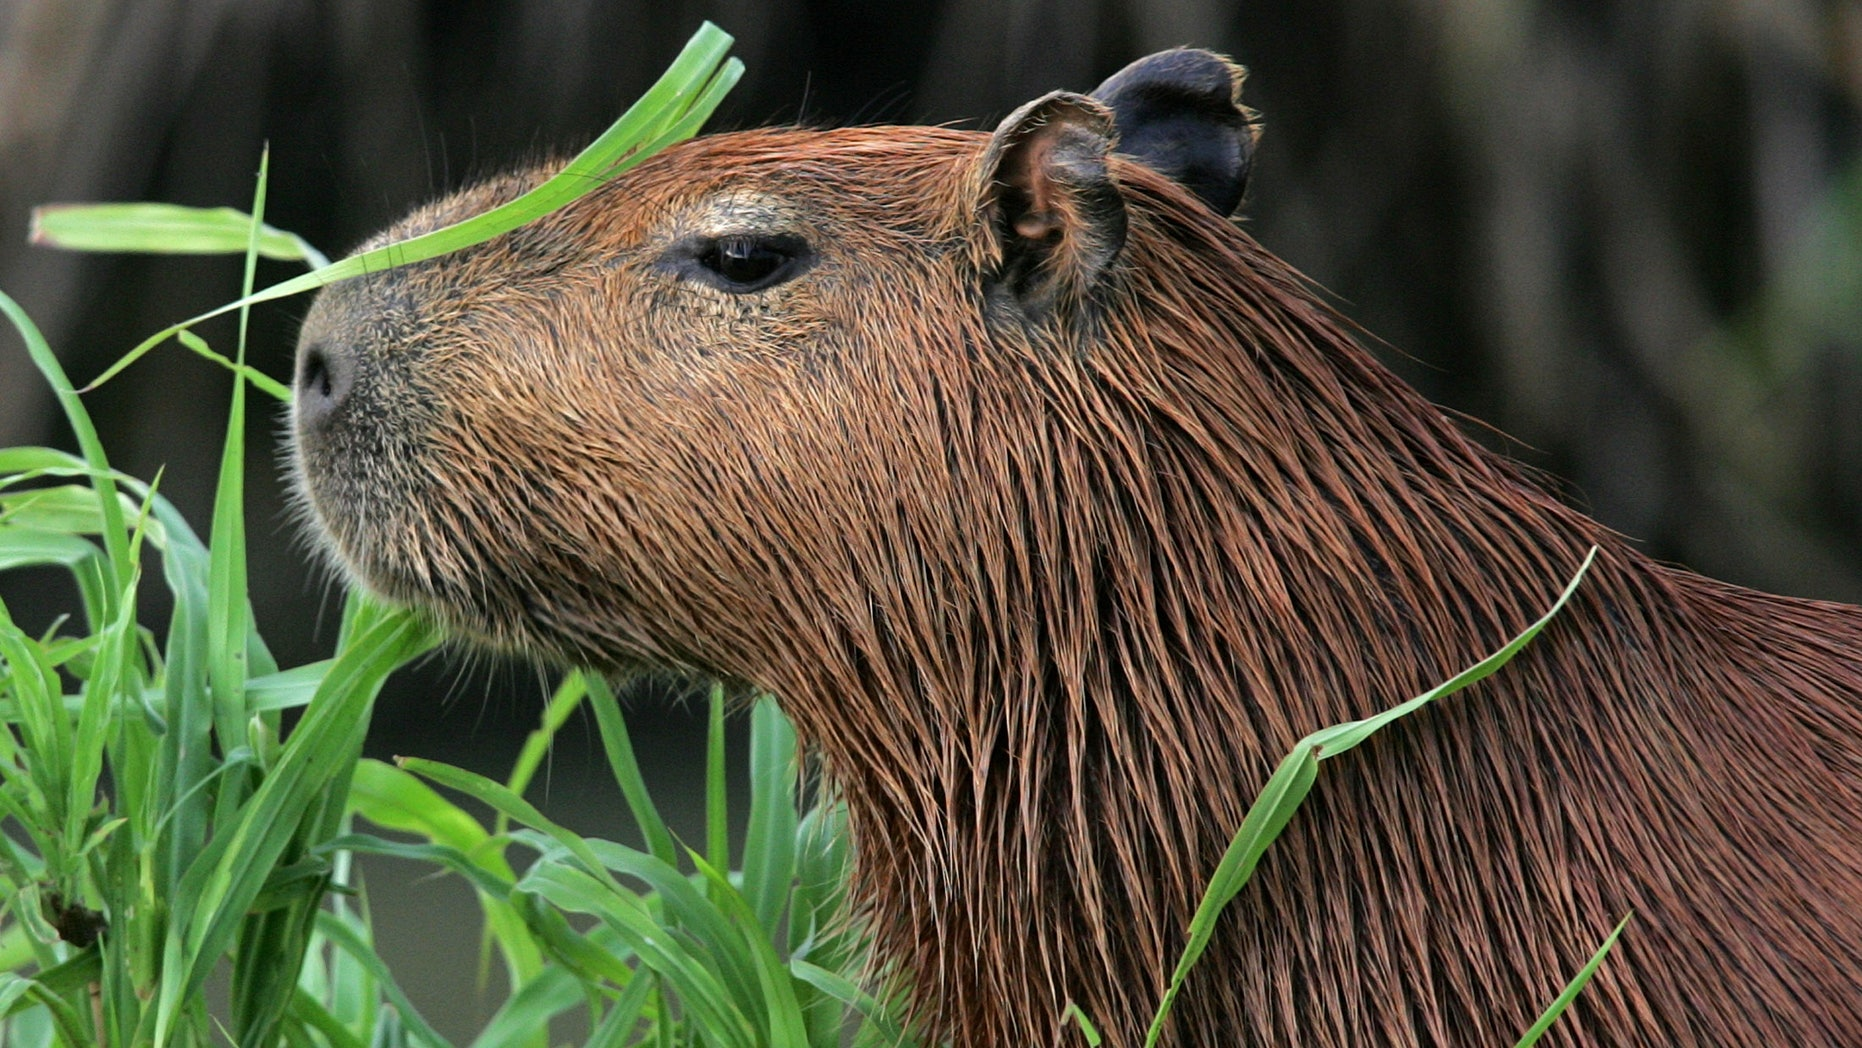 A capybara or Hydrochoerus Hydrochaeris, a semi-aquatic and the biggest rodent of the world, waits in Hato Pinero, 370 km (229 miles) west of [Caracas], May 3, 2005.  [Venezuela's best-known eco-tourism reserve and cattle ranch is fighting for its survival against Venezuelan government land reform. The Hato Pinero, a private 200,000-acre (80,000 hectare) property was declared as being public land and subject to confiscation after President Hugo Chavez's government made it a target for takeover to redistribute rural land to the poor.] - RTXNG64